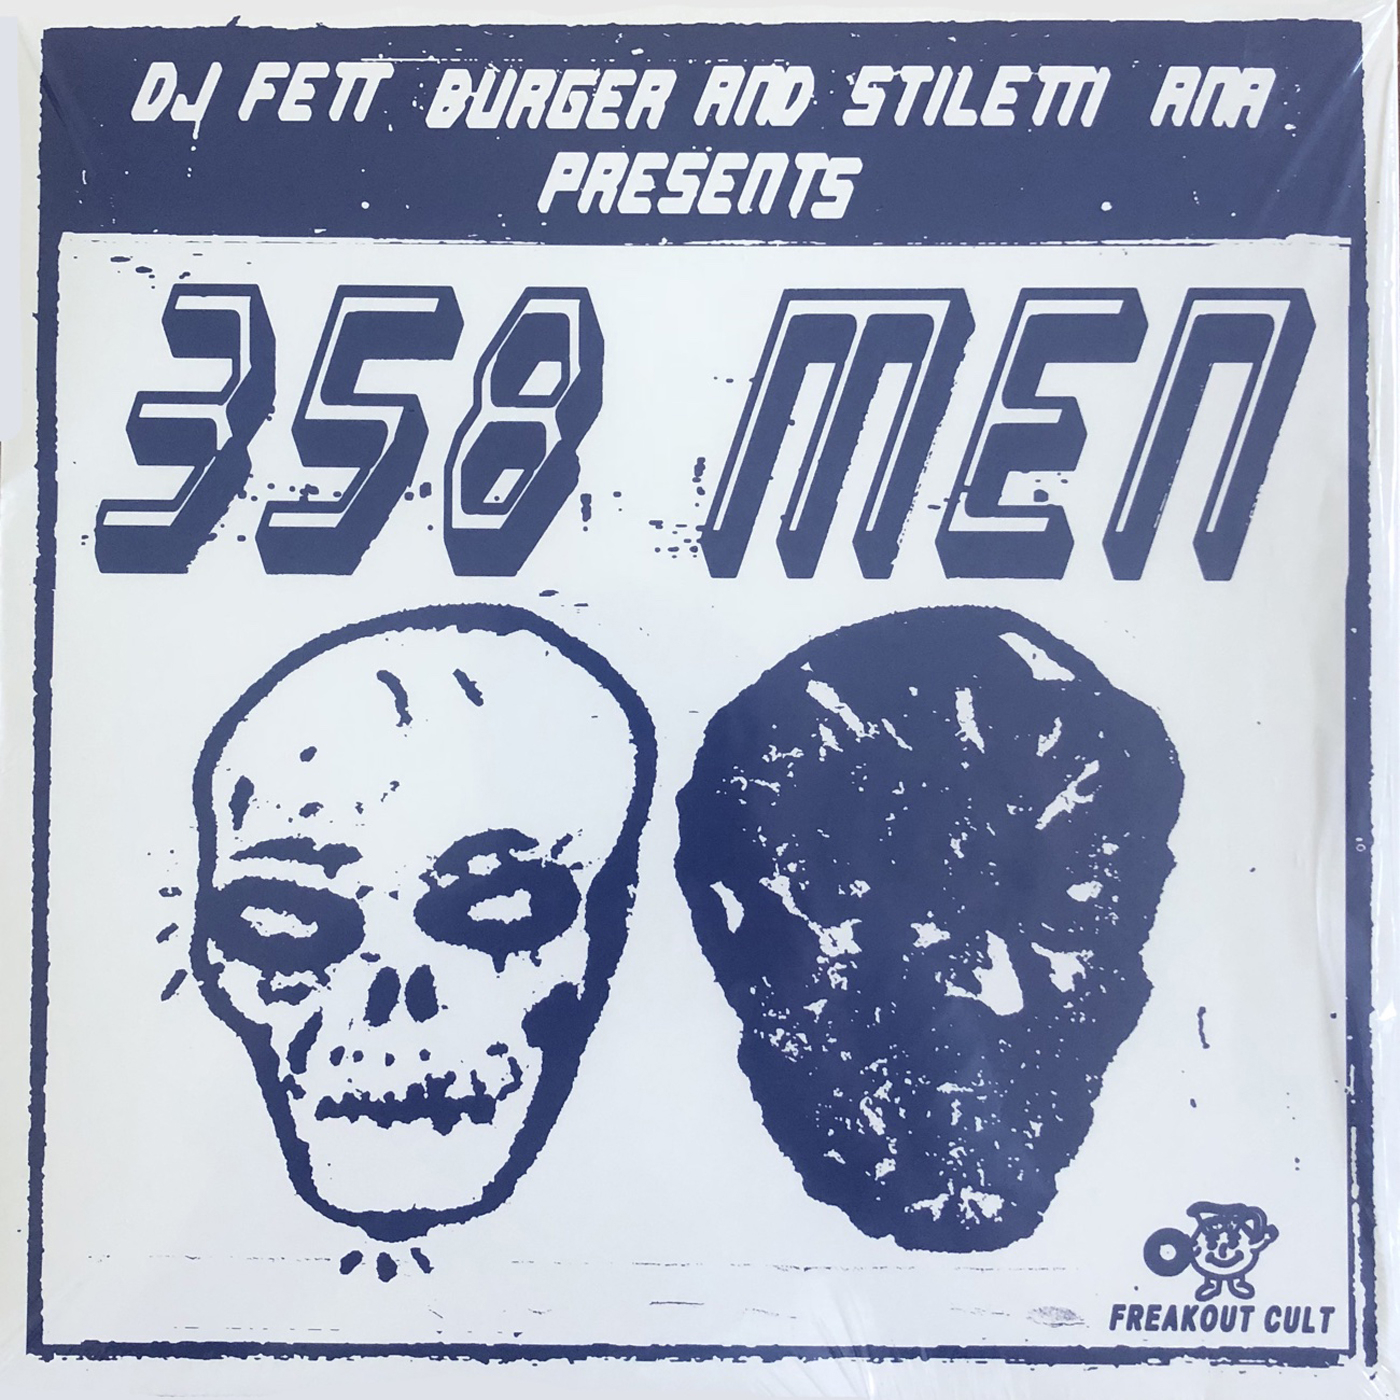 DJ Fett Burger and Stiletti Ana - 358 Men